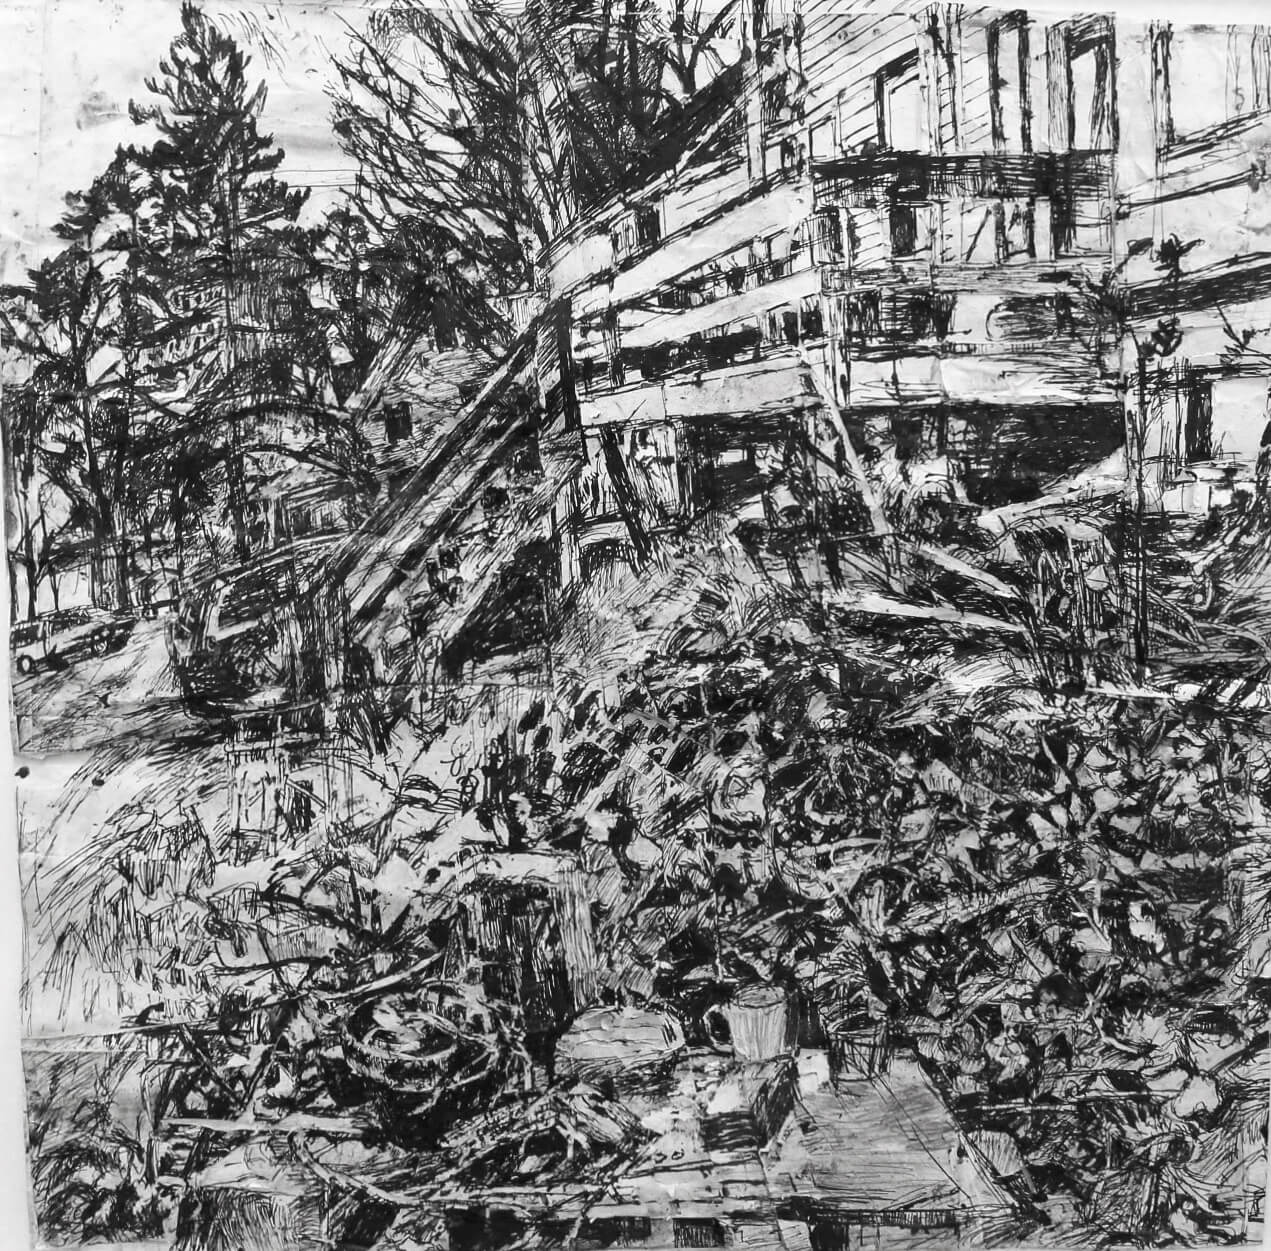 Stanley Lewis, View towards Don Judge's  House, 2011, ink on paper, 24 x 25 inches  (From the Louis-Dreyfus Family Collection, courtesy of The William Louis-Dreyfus Foundation Inc.)